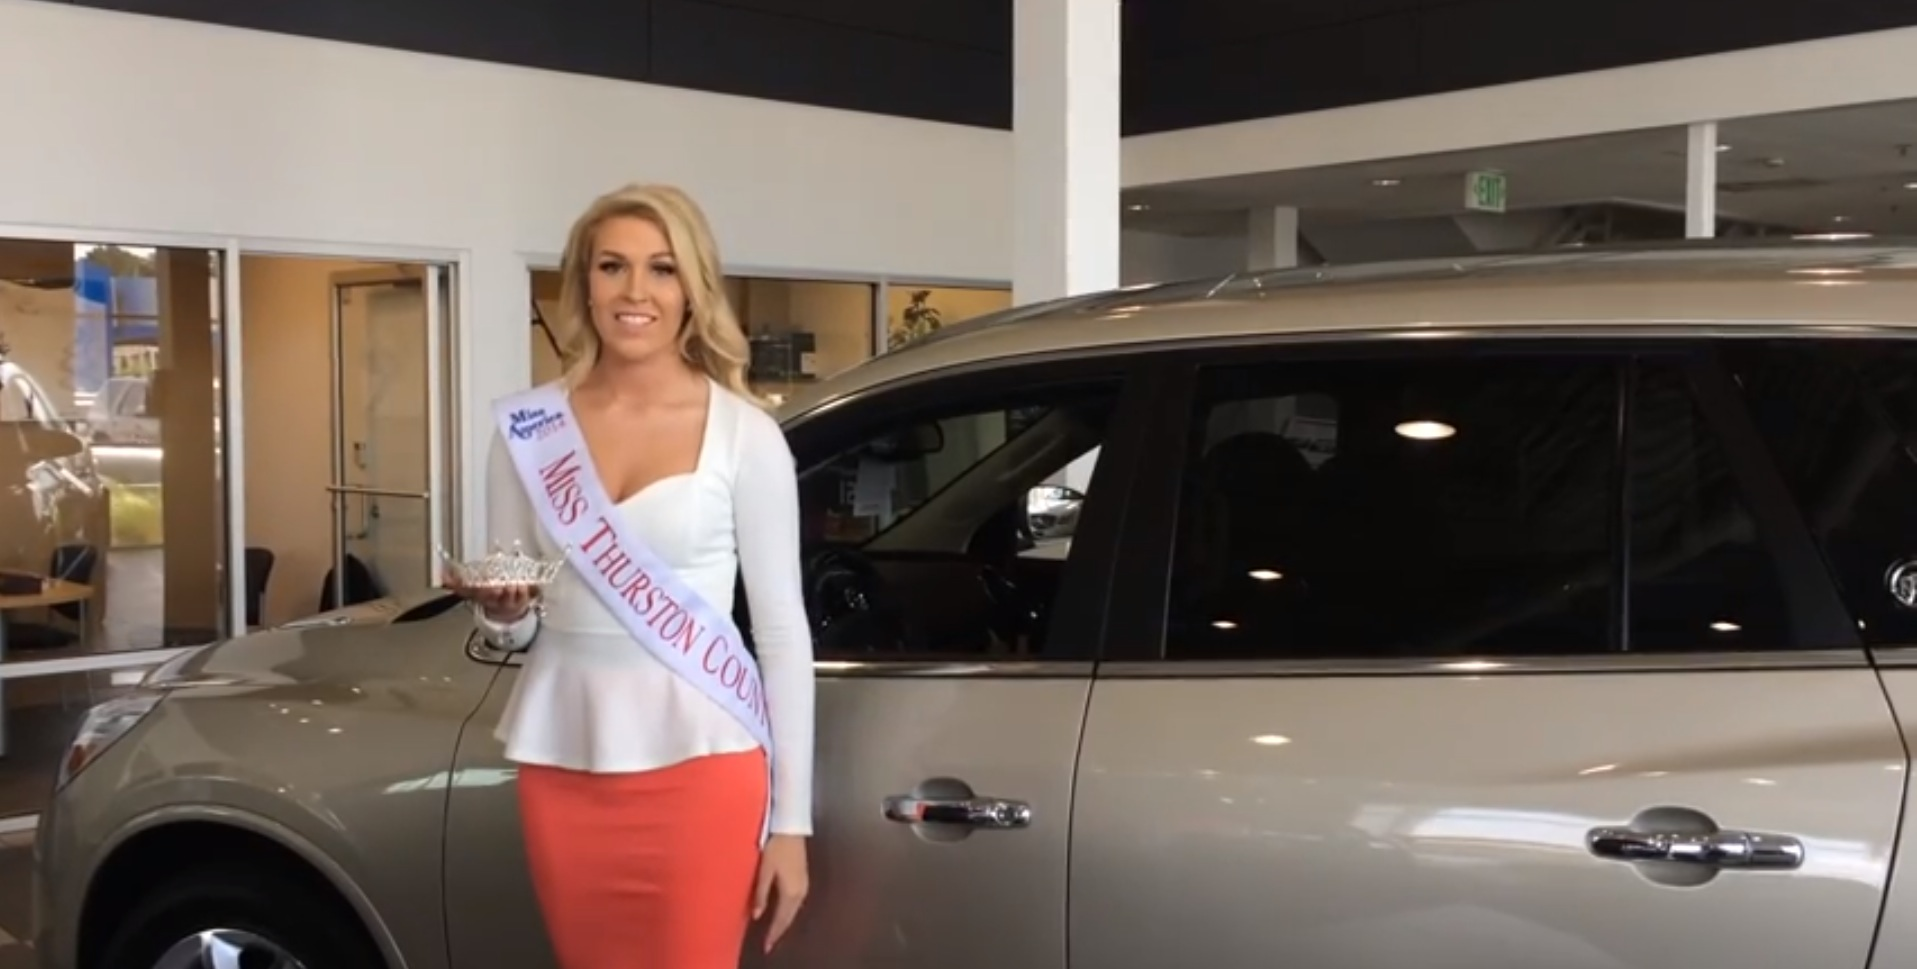 Cadillac Dealership Uses Miss Washington Pageant Girls To Sell Cars